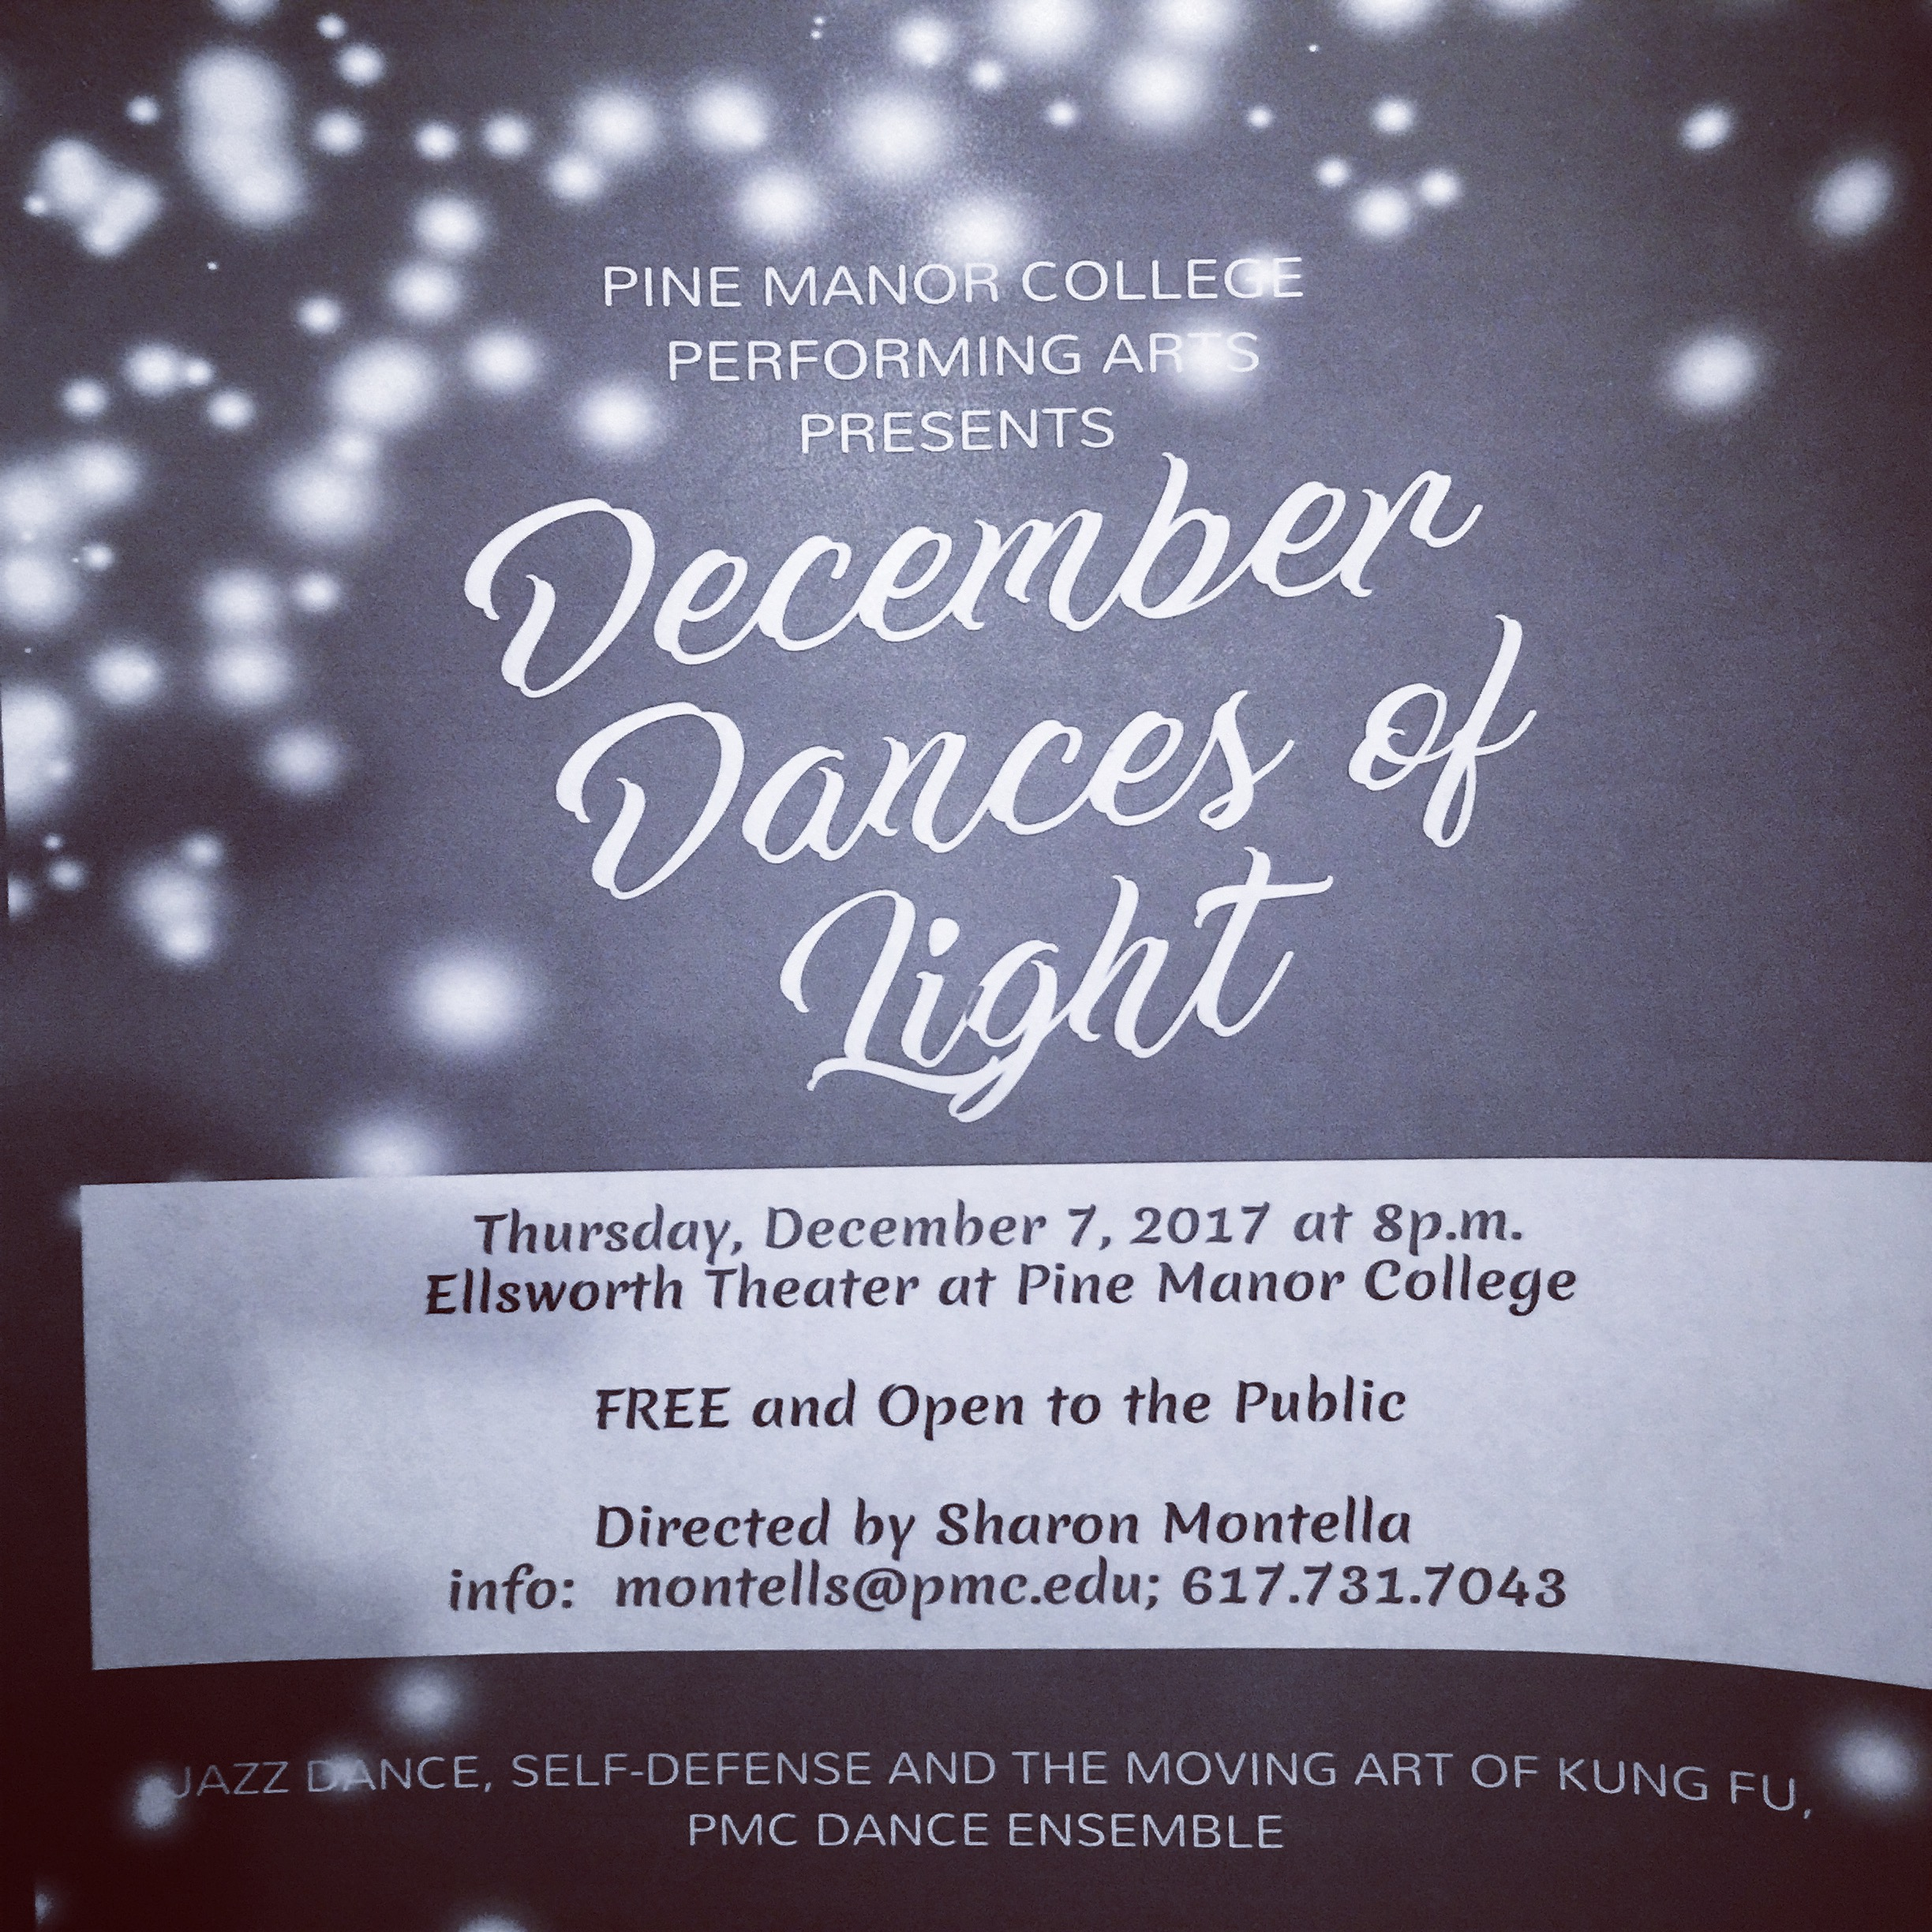 See Dangerous Brood perform in 'December Dances of Light' at Ellsworth Theater at Pine Manor College. Featuring PMC dance classes, Dance Ensemble, Dance Ensemble Alumnae Carline Kirksey, Legacy Guinyard, Karm Syndia and Guest Artists Abilities Dance (artistic dir. Ellice Patterson, 'A' Major Dance Company, CreationDance (artistic dir. Helena Froehlich), Dangerous Brood (artistic dir. Sharon Montella), Sarah Donahue, IntrigueBoston Heart Ent (artistic dir. LaRissa Patterson), Courtney LeBlanc from Stonehill College and Margaux Skalecki. FREE and open to the public